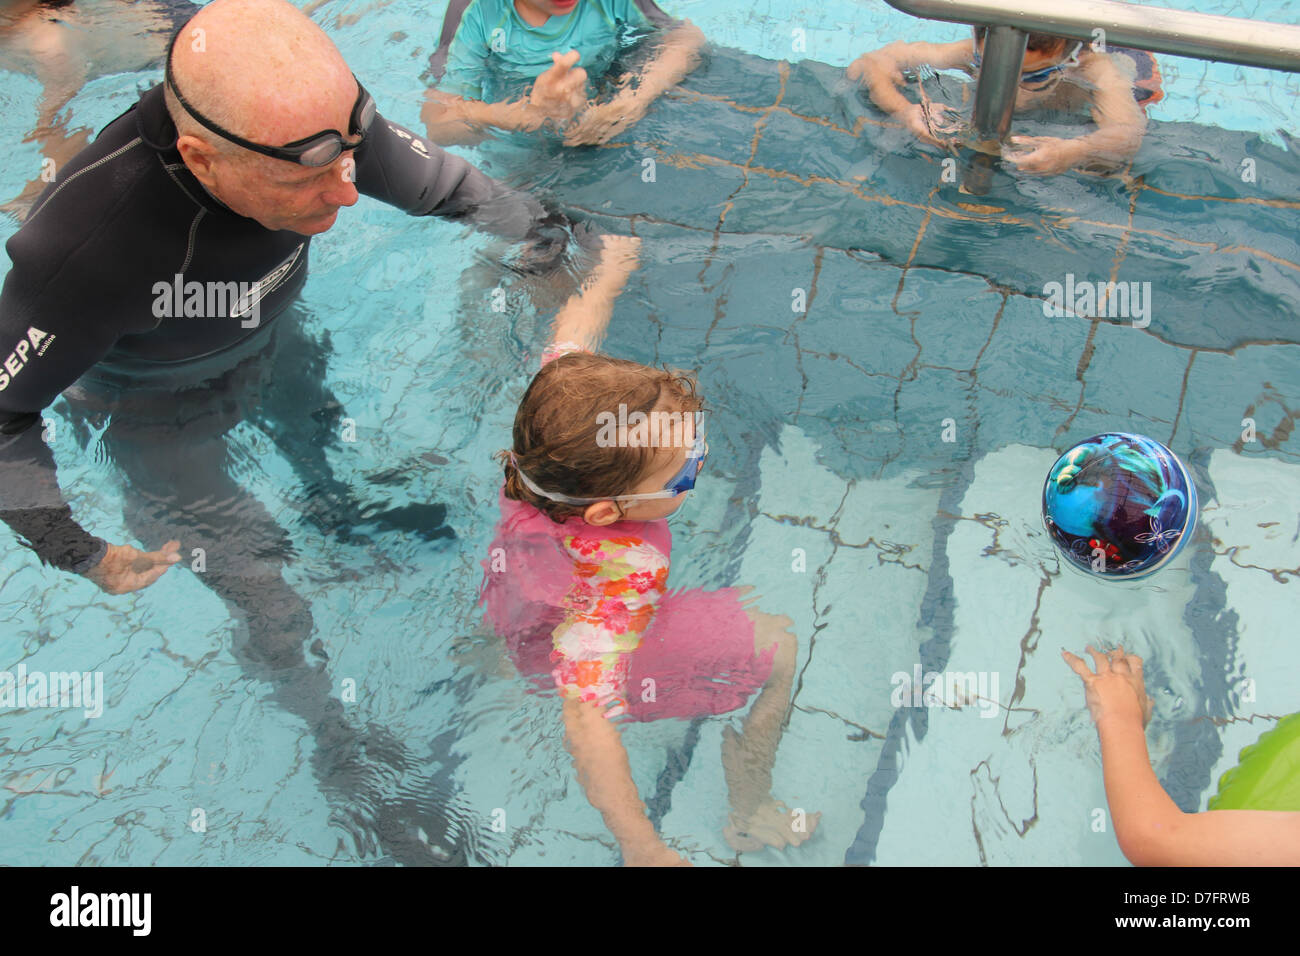 Child practising Hydrotherapy (hydropathy) in swimming pool, Misgav - Stock Image